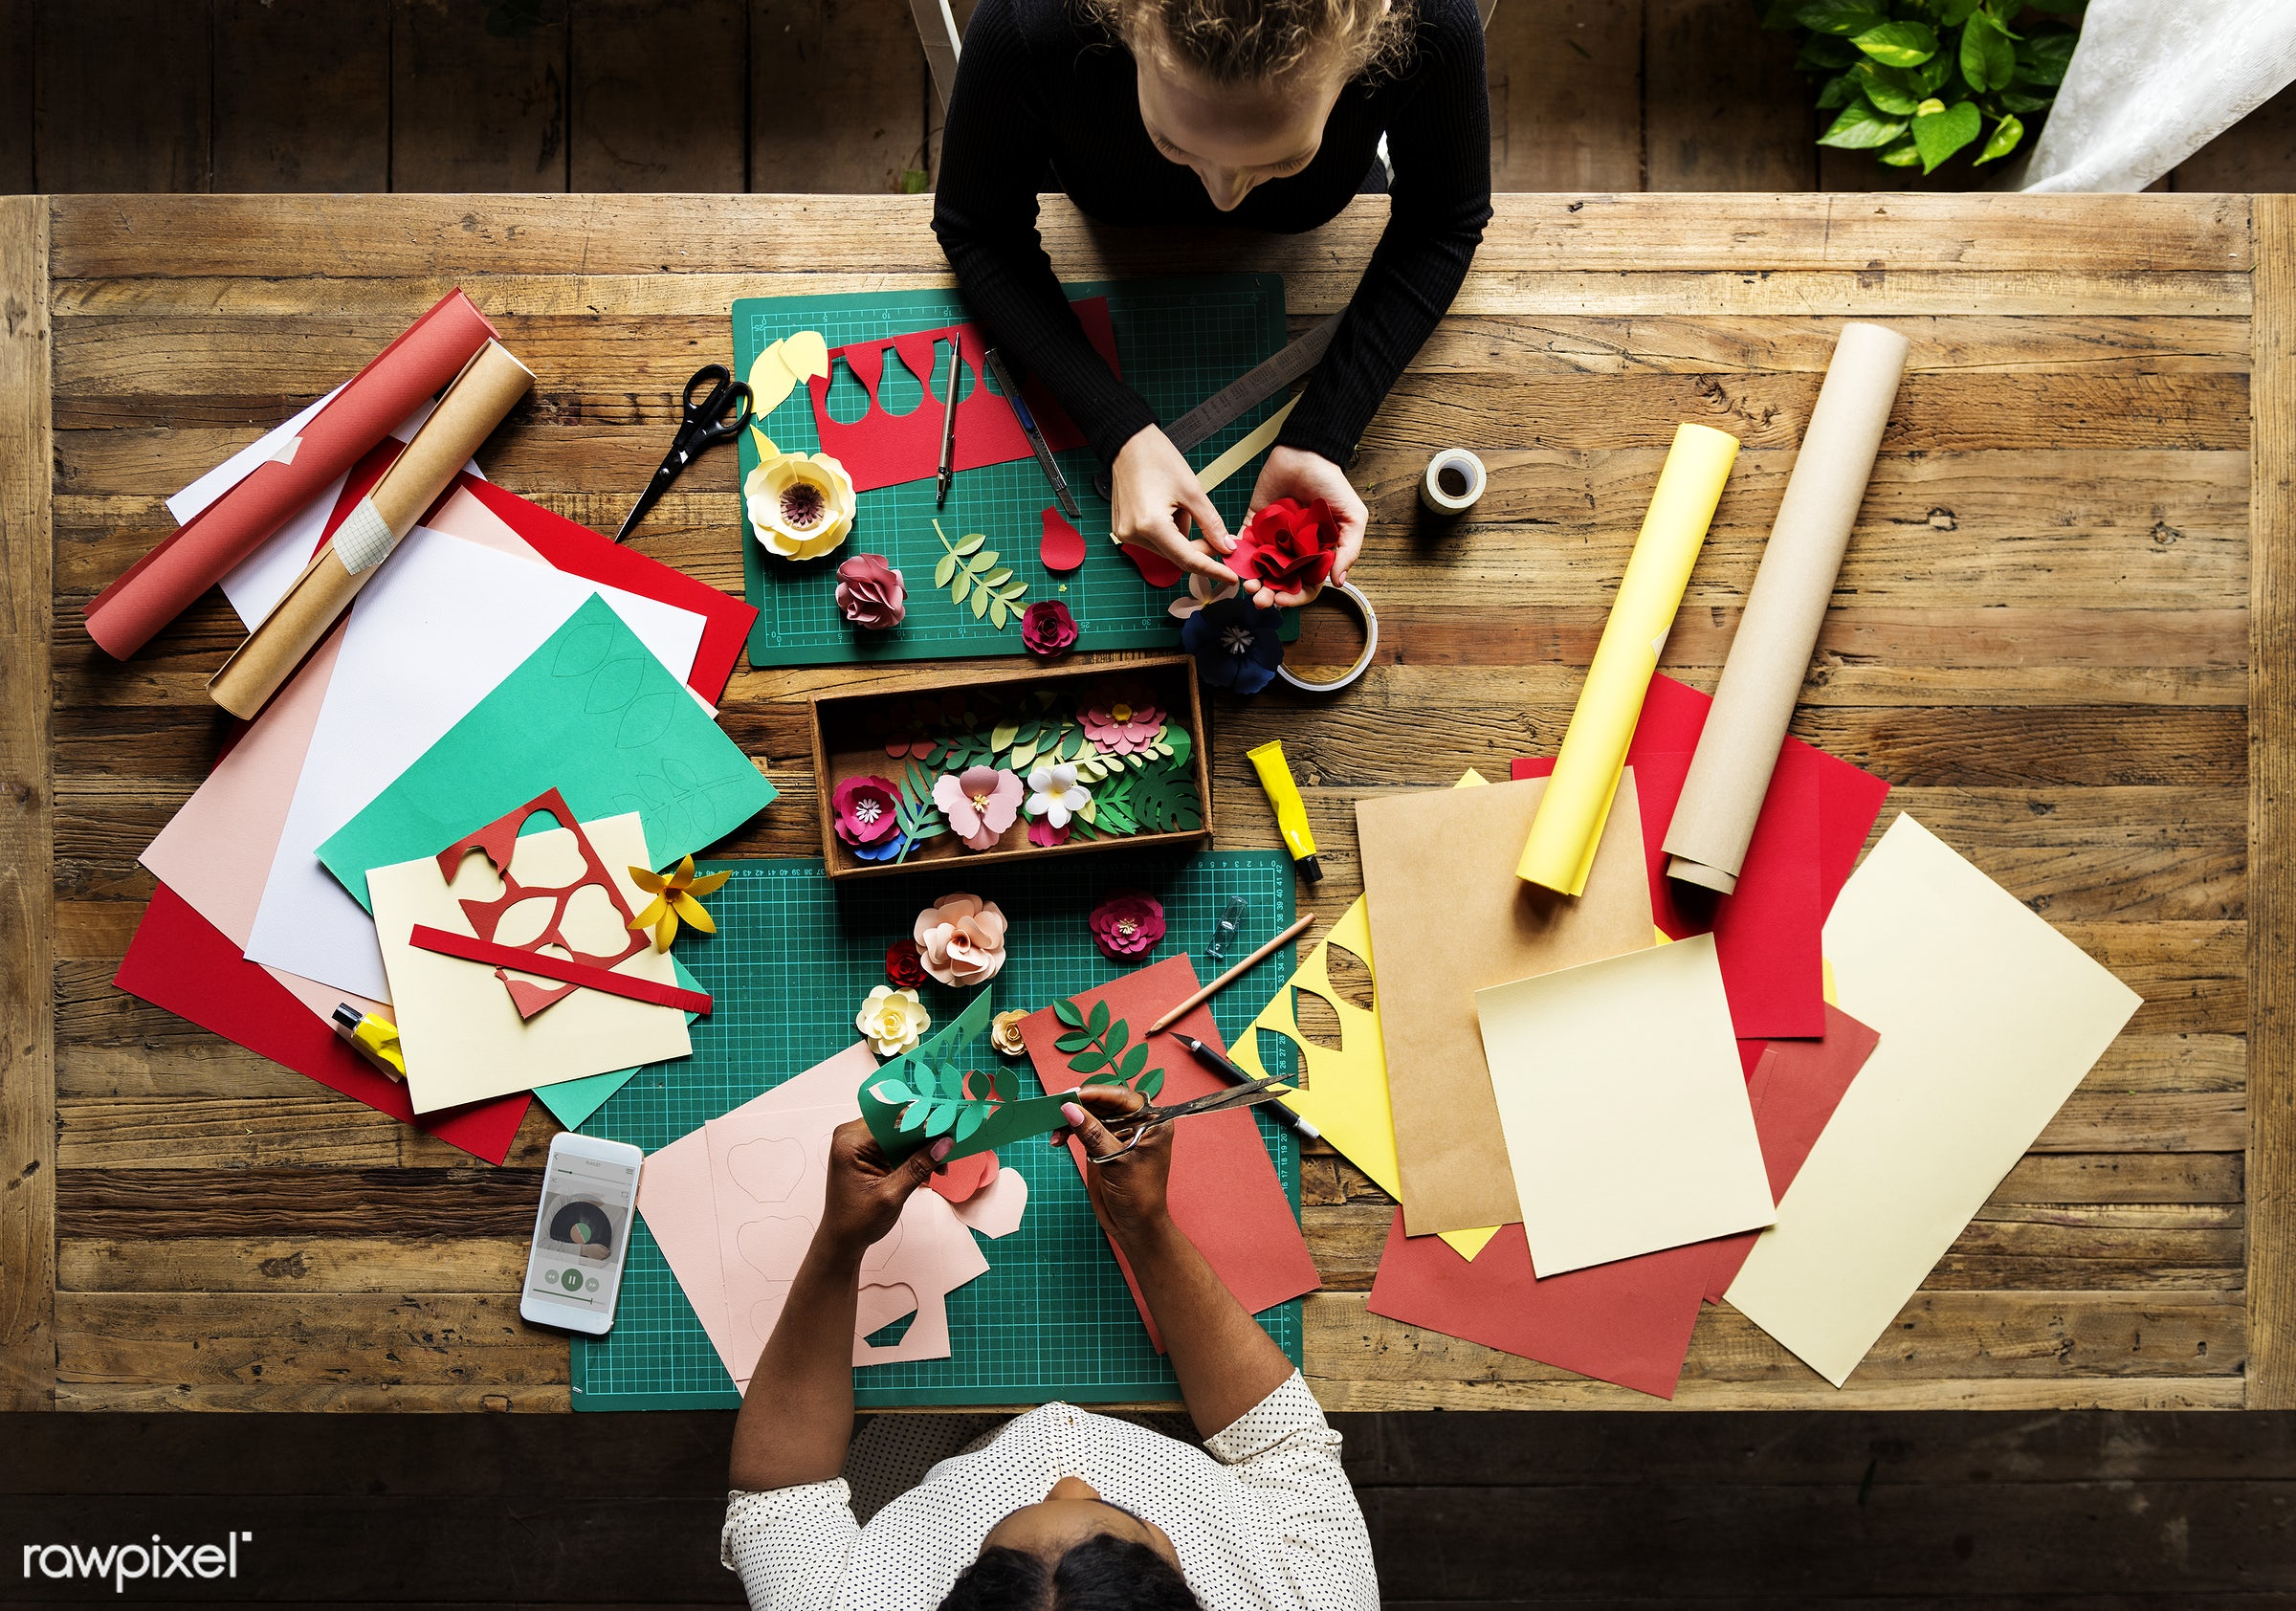 Aerial view of messy paper craft work table - art, design, skill, talent, paper, craft, handmade, stationery, cutout,...